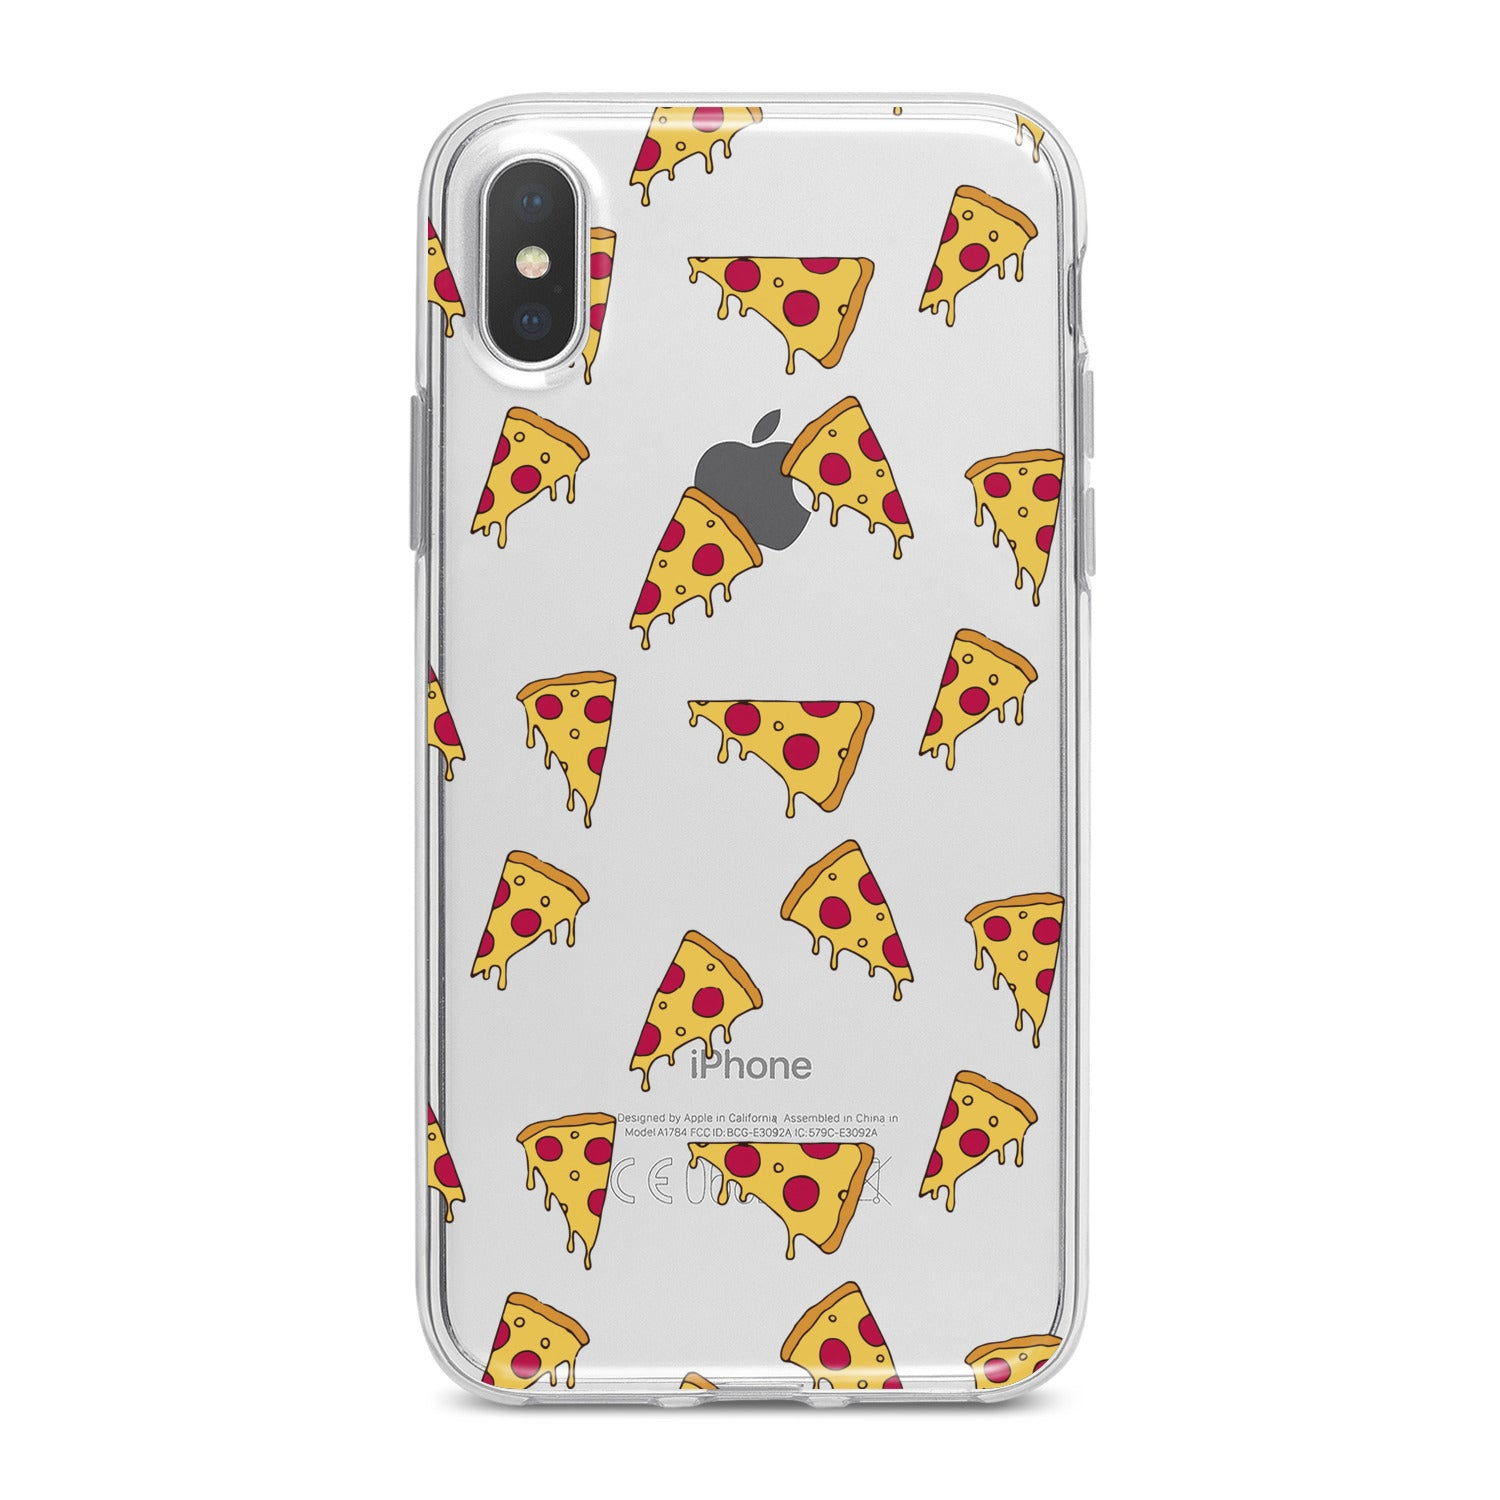 Lex Altern Pizza Pattern Phone Case for your iPhone & Android phone.